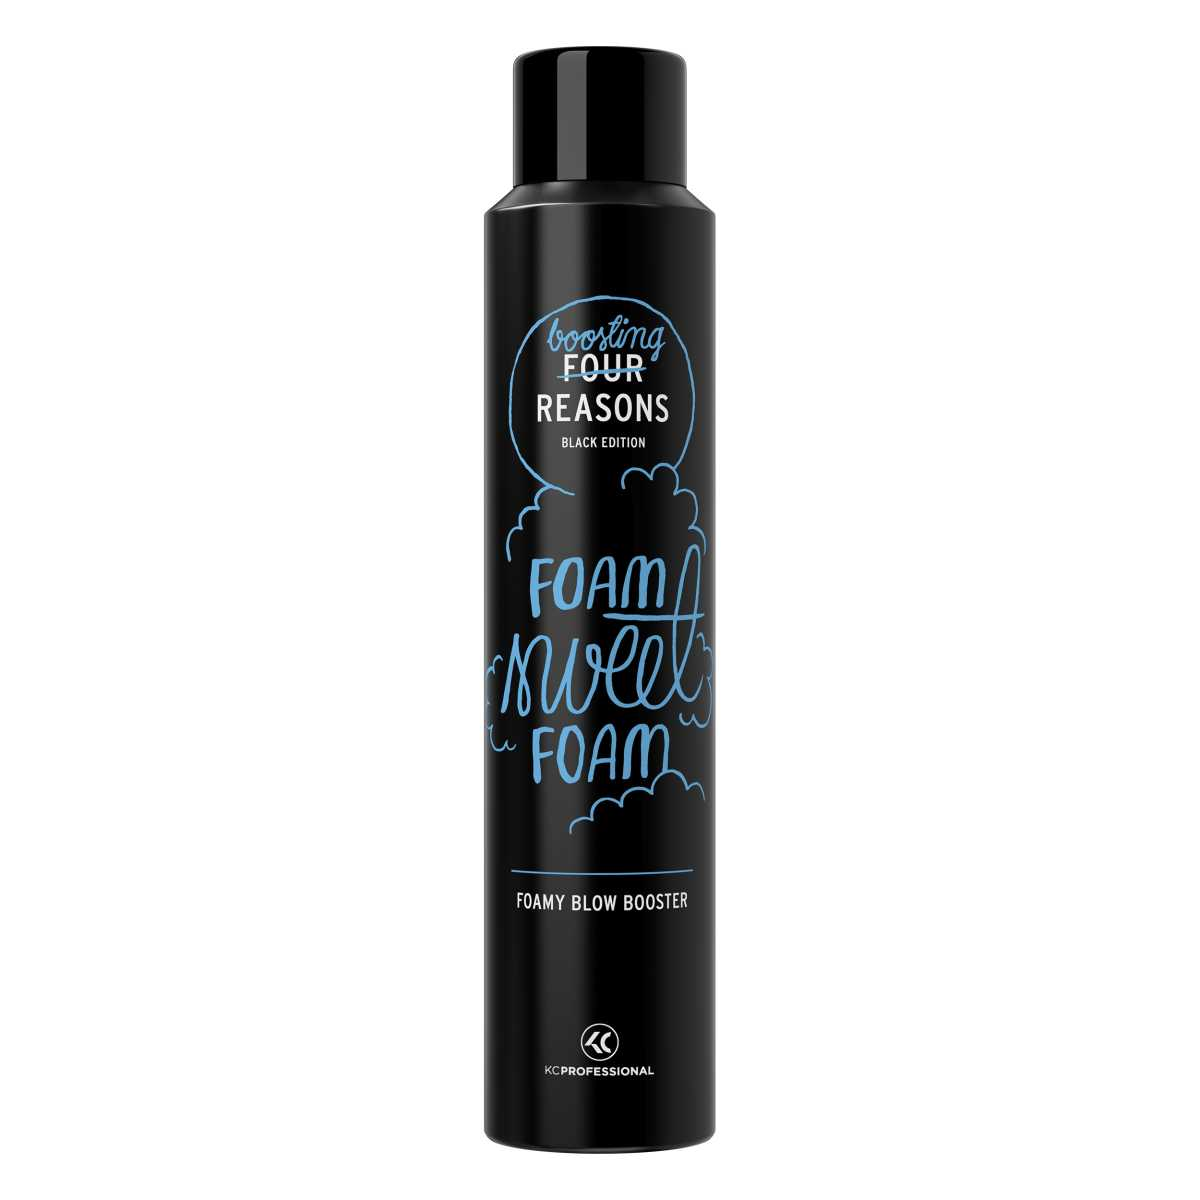 Four-Reasons-Black-Edition-Foamy-Blow-Booster